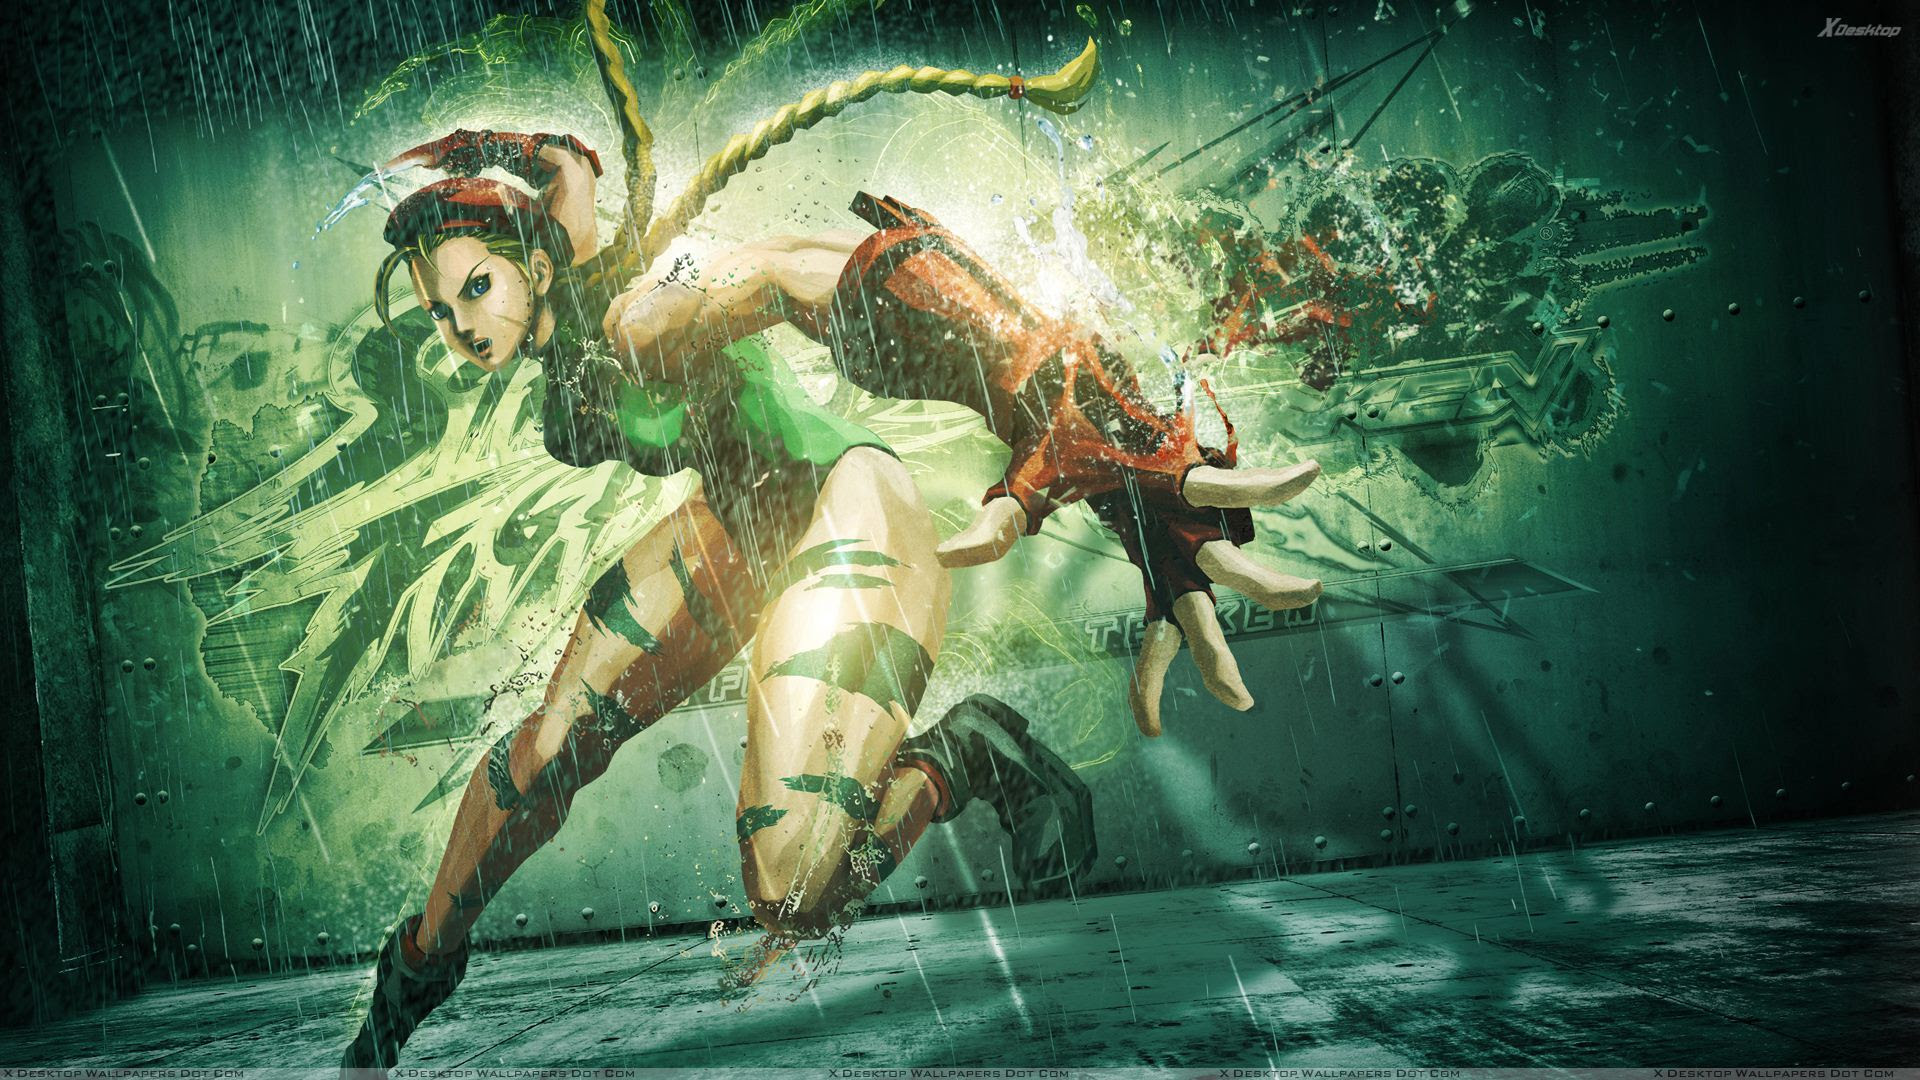 Street Fighter X Tekken Cammy Wallpaper